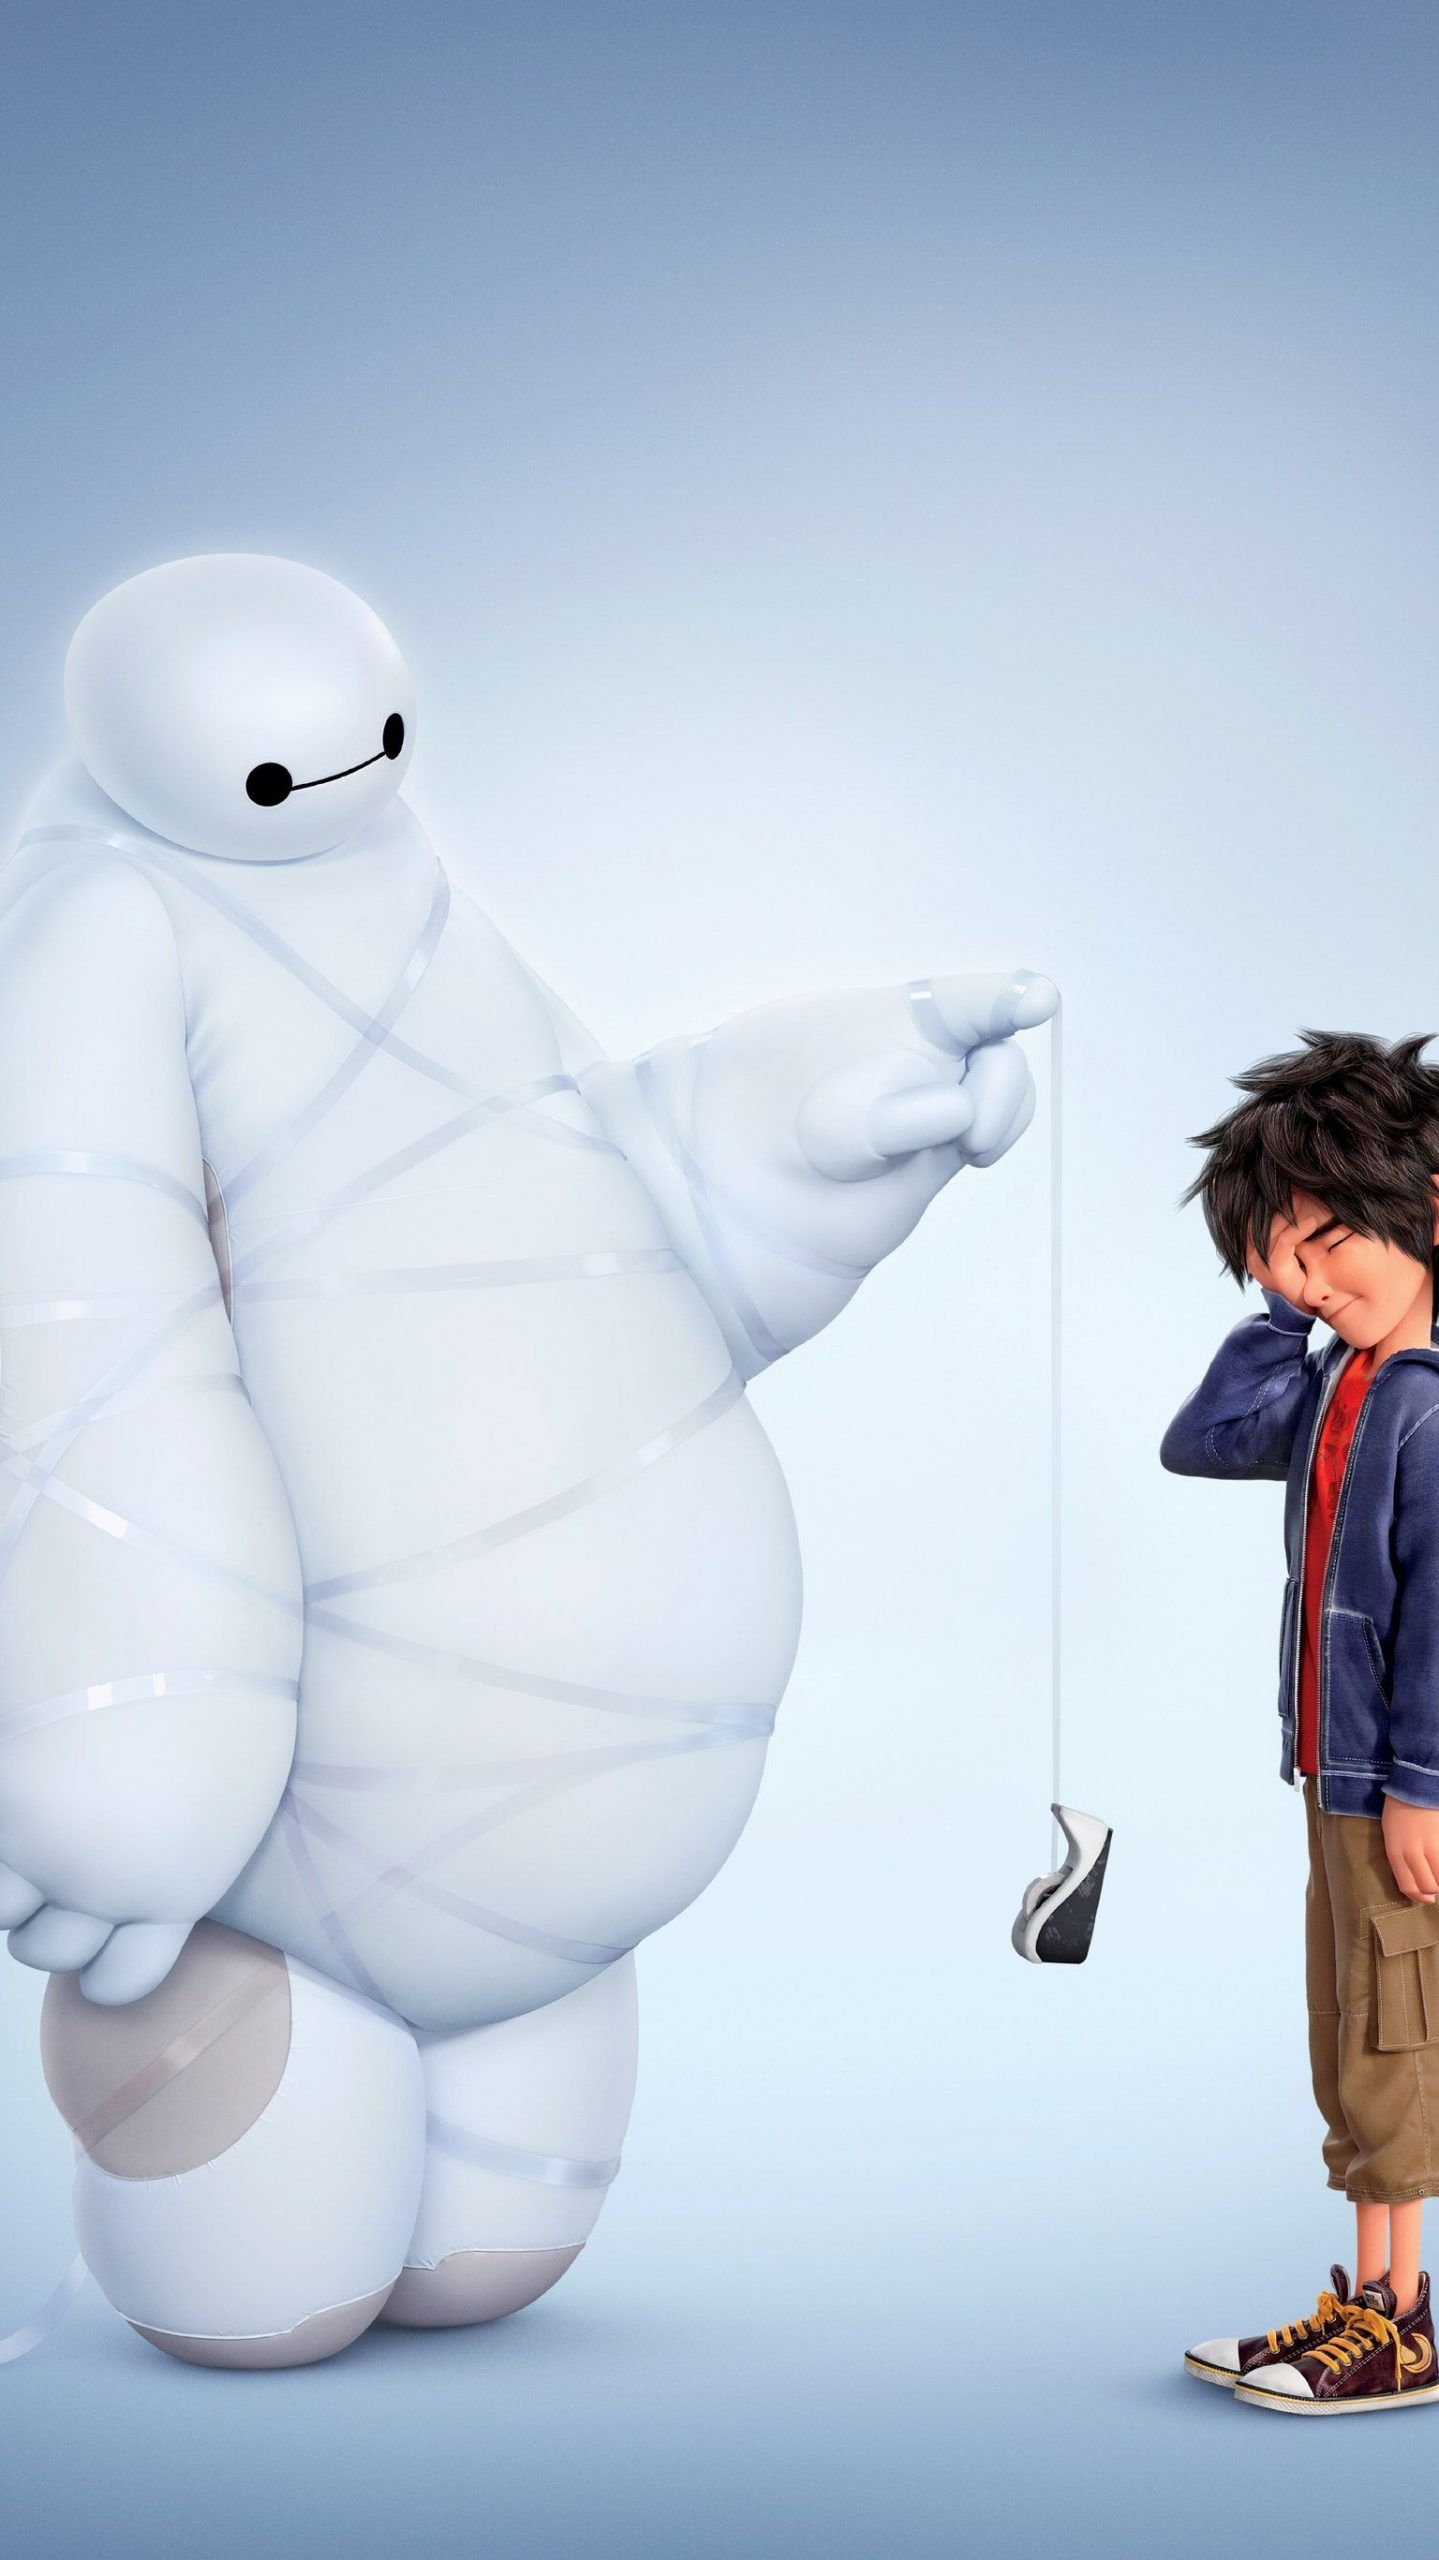 Big Hero 6 (2014) Phone Wallpaper in 2020 Hero wallpaper